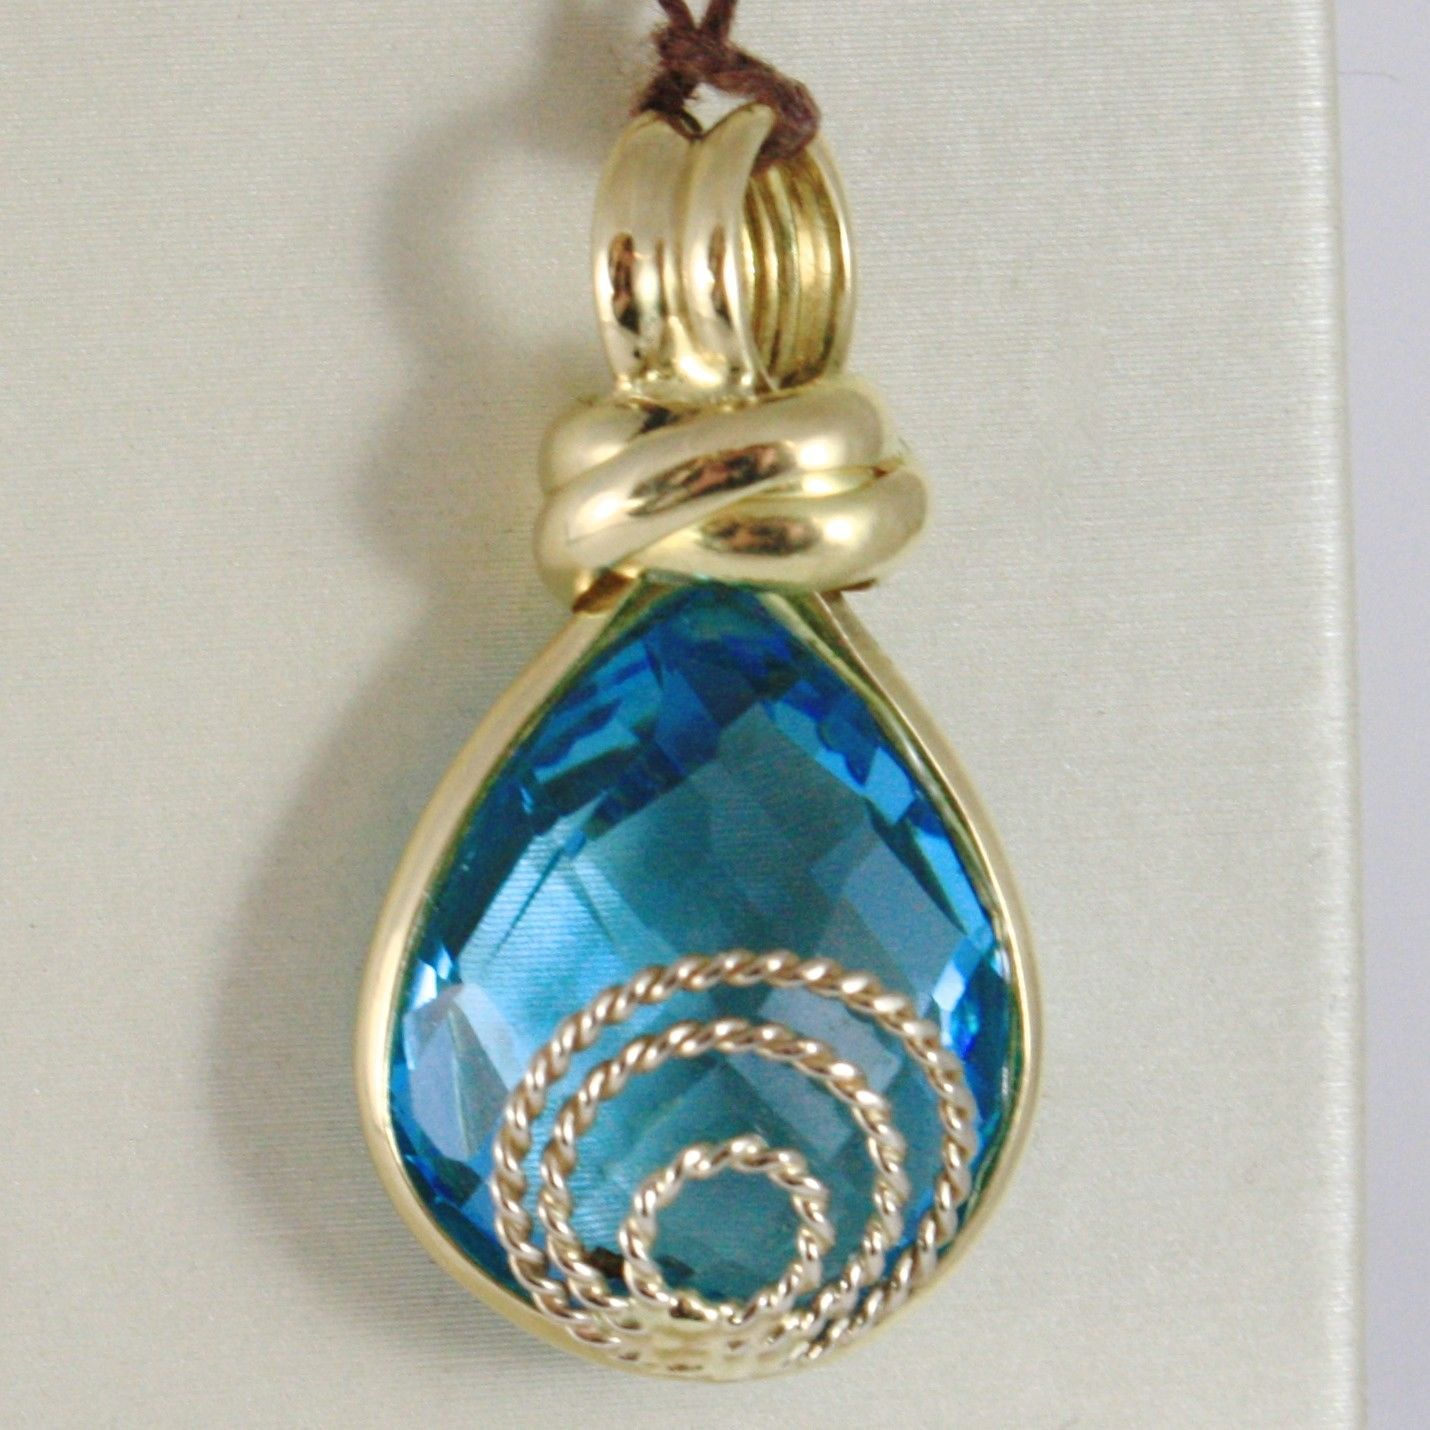 18K YELLOW GOLD PENDANT BIG DROP CUSHION BLUE TOPAZ, FINELY WORKED MADE IN ITALY